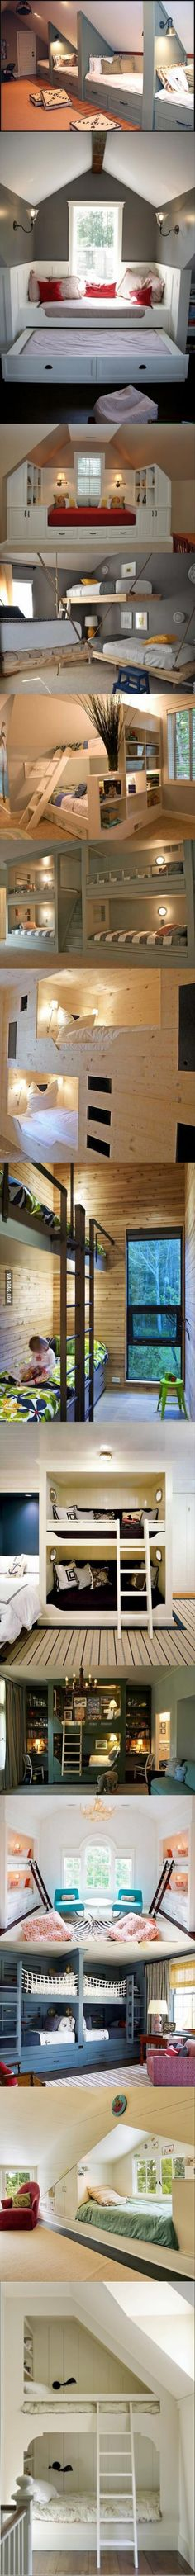 Bunk beds galore.